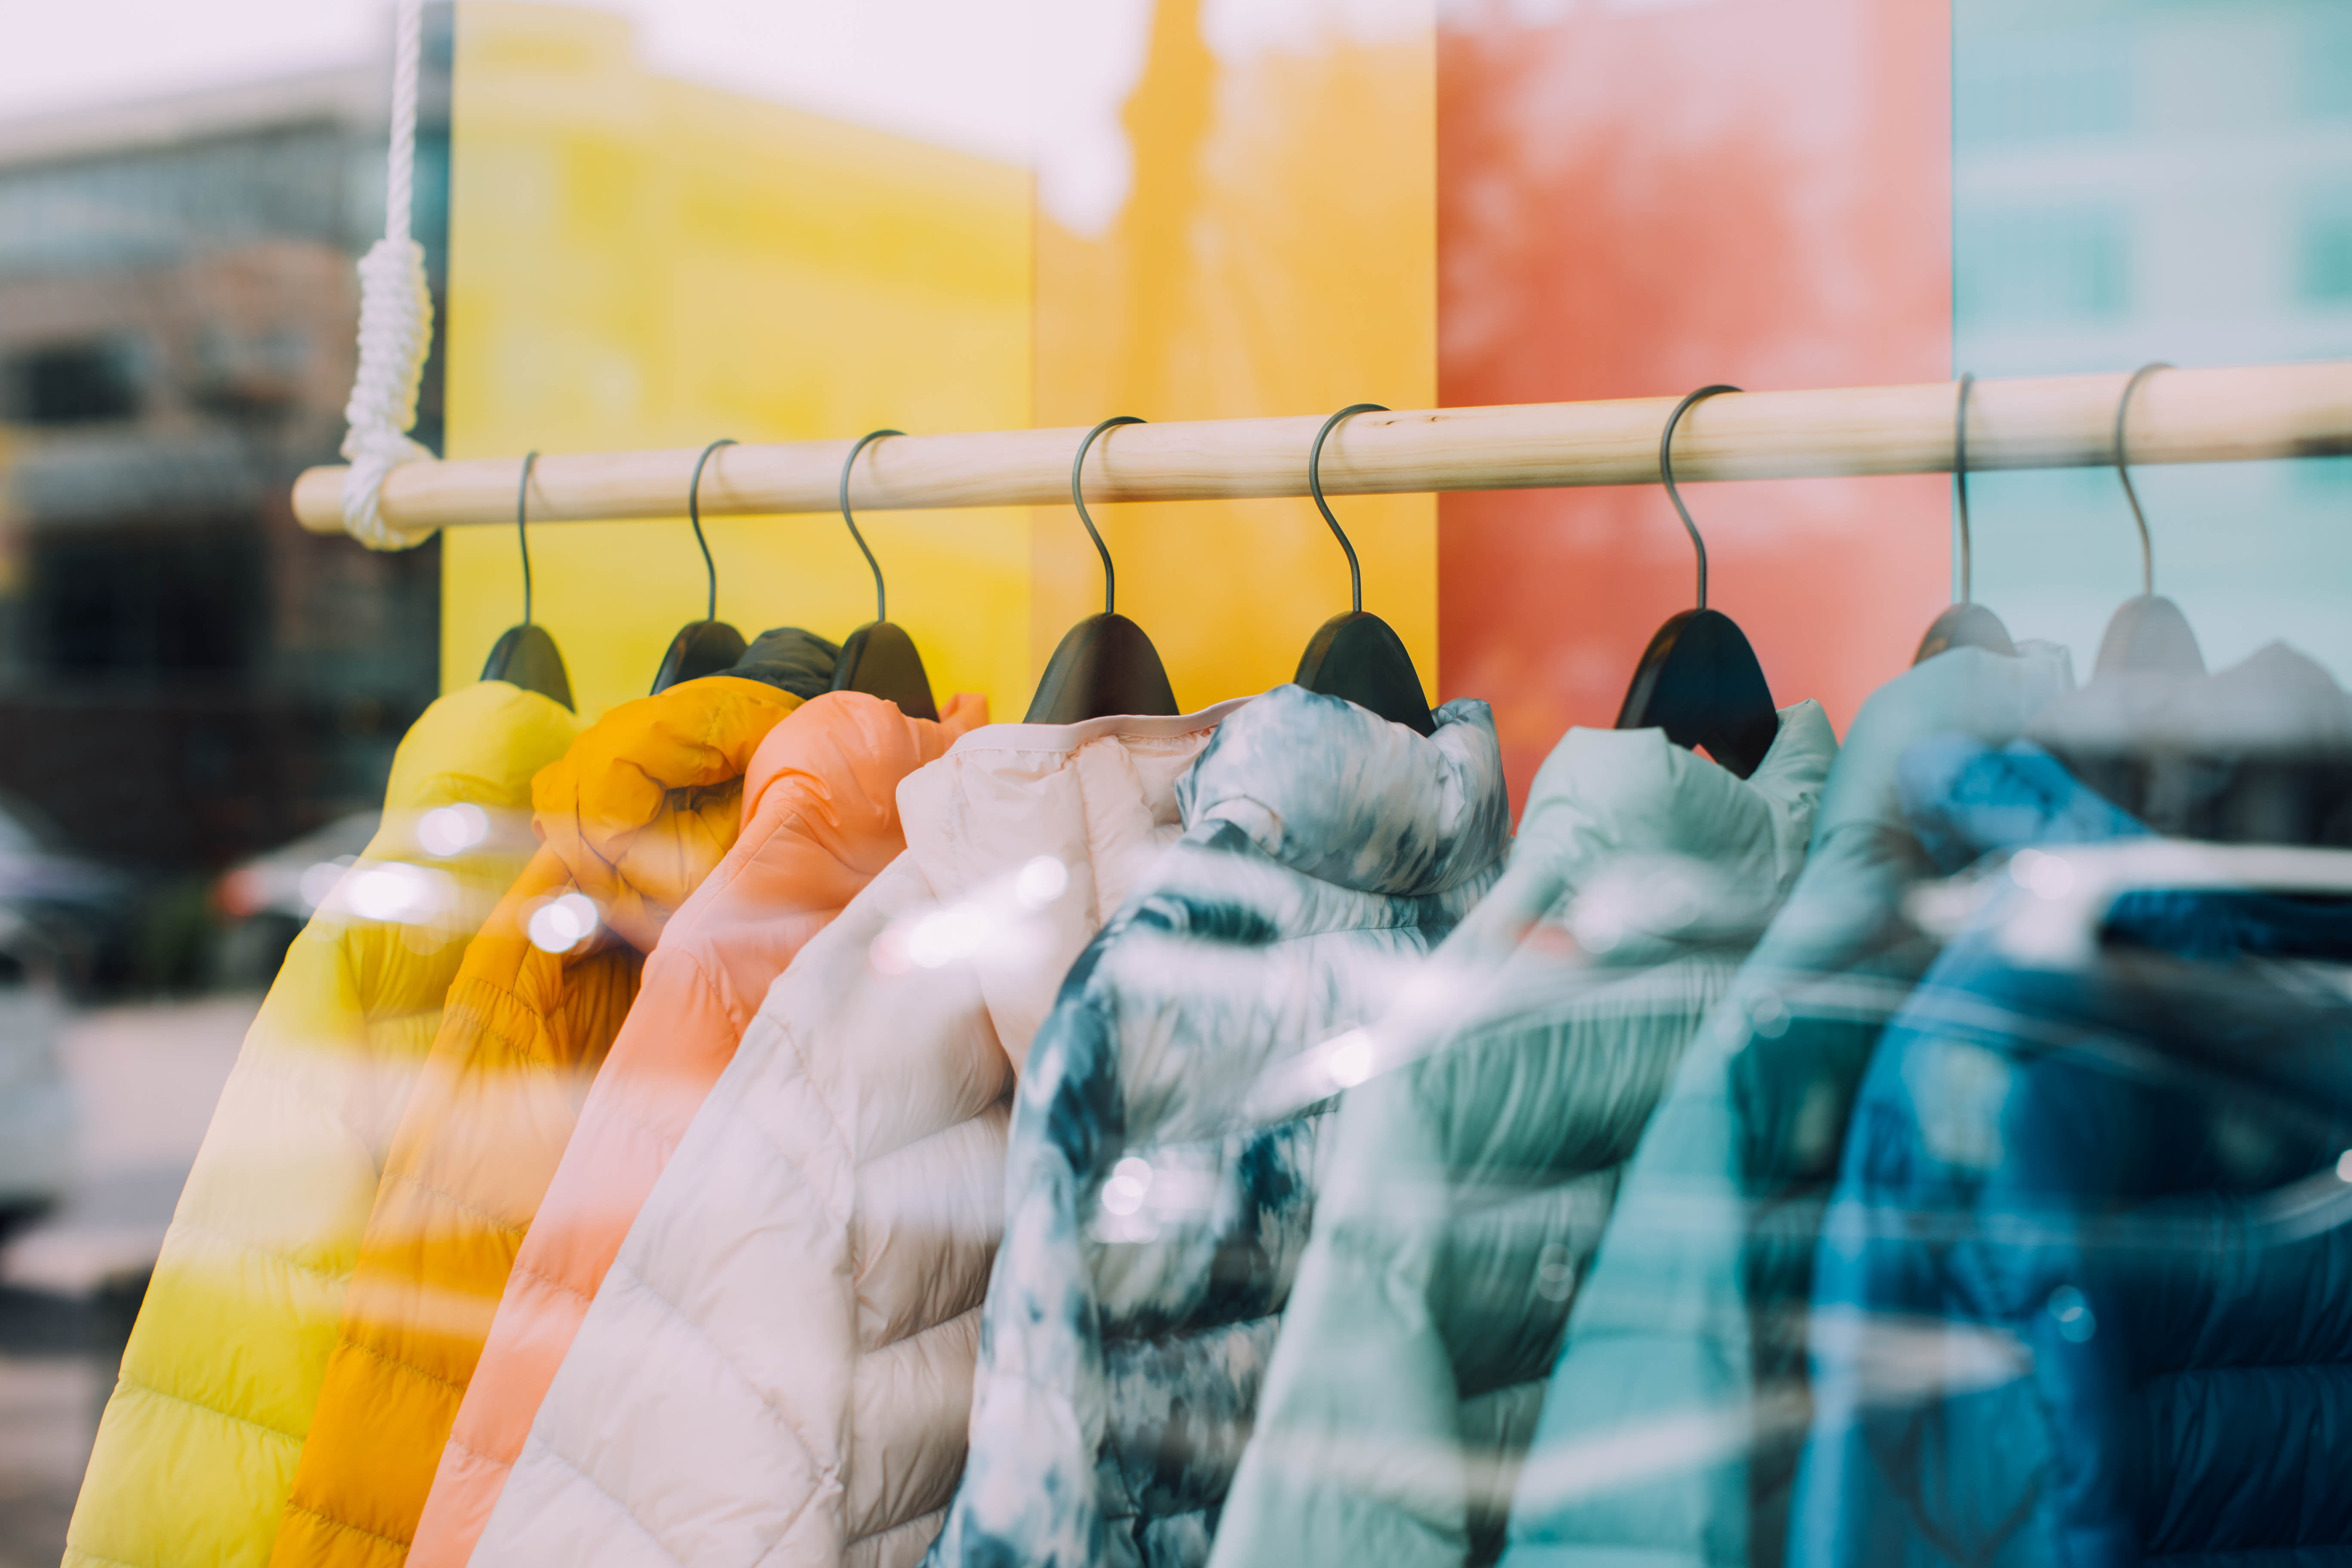 In-Store Decisions are still key - With the explosion of mobile, social and digital influences, it's imperative to use a blend of online and in-store offline strategies, through multiple touch points to drive consumers in-store. Once there, companies must effectively grab and keep shoppers' attention...